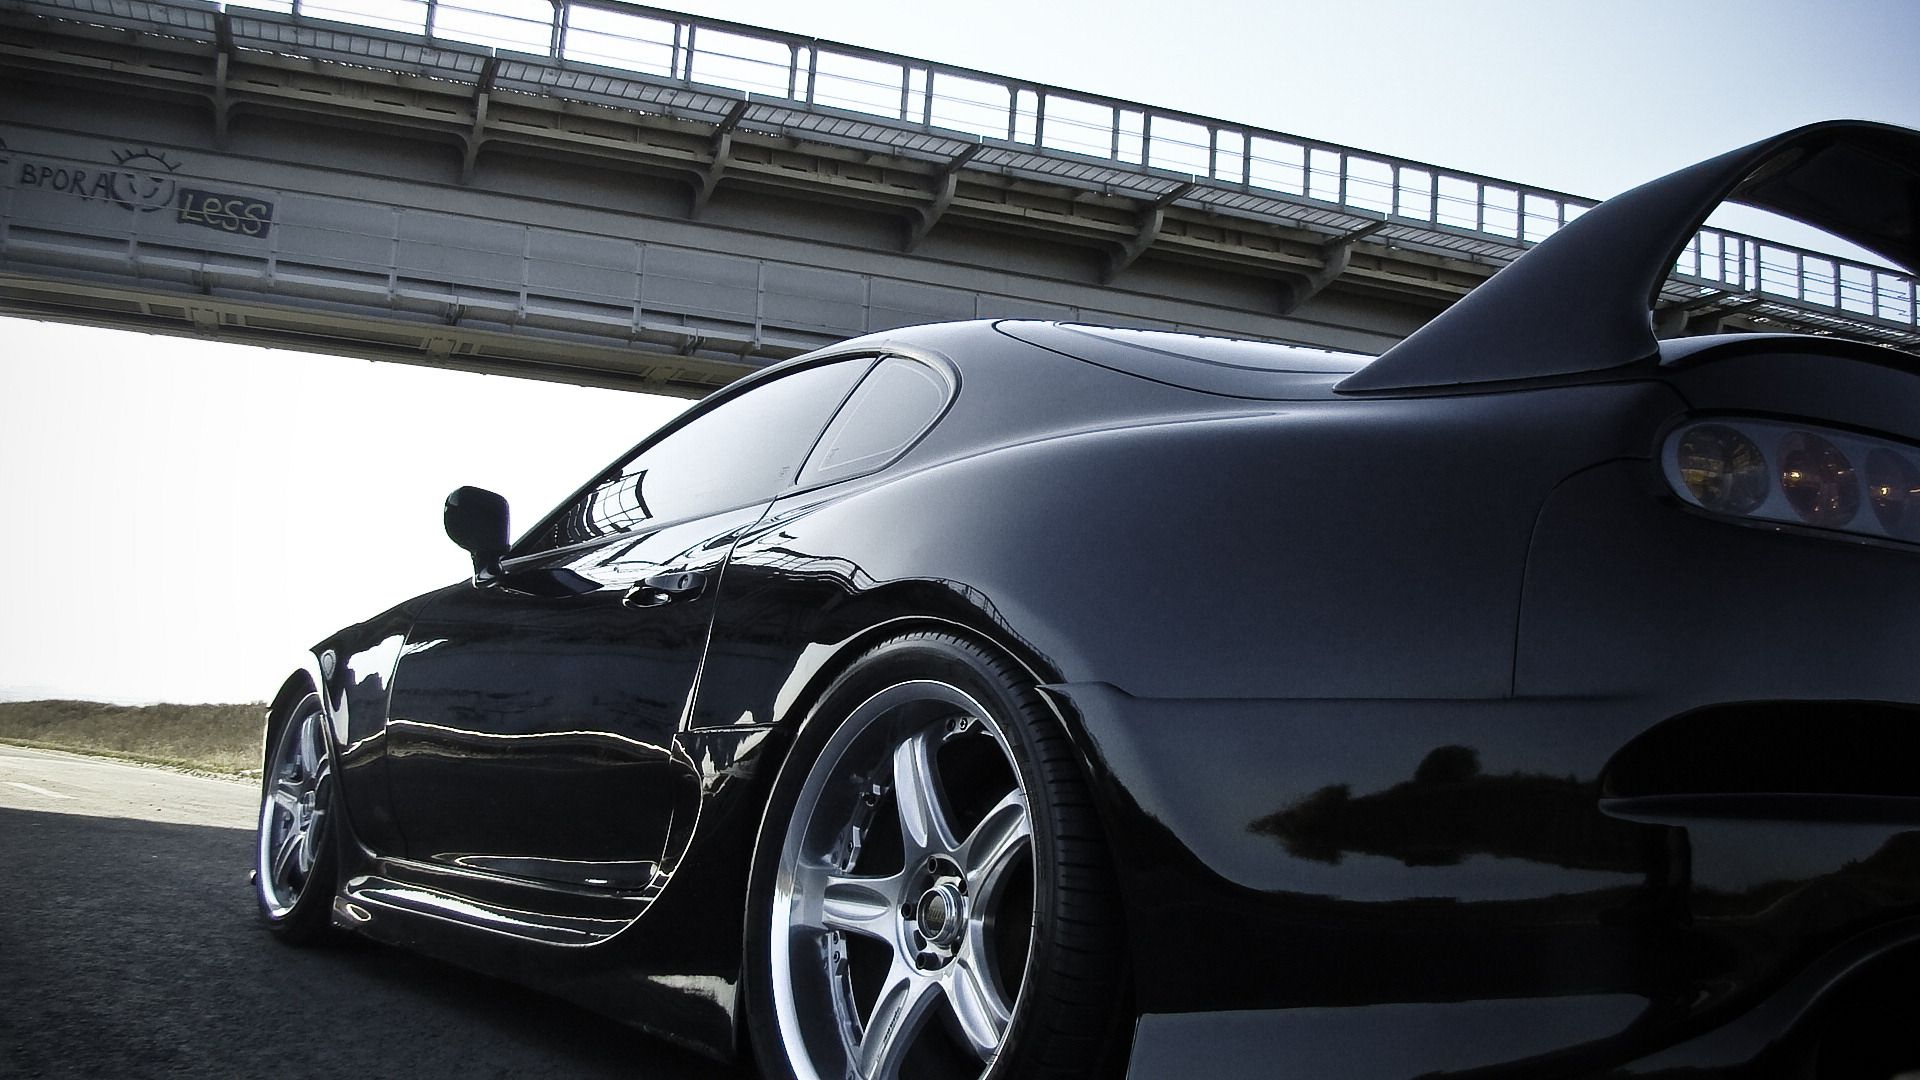 View our large collection of used toyota supra 2 doors sport cars for sale at great prices